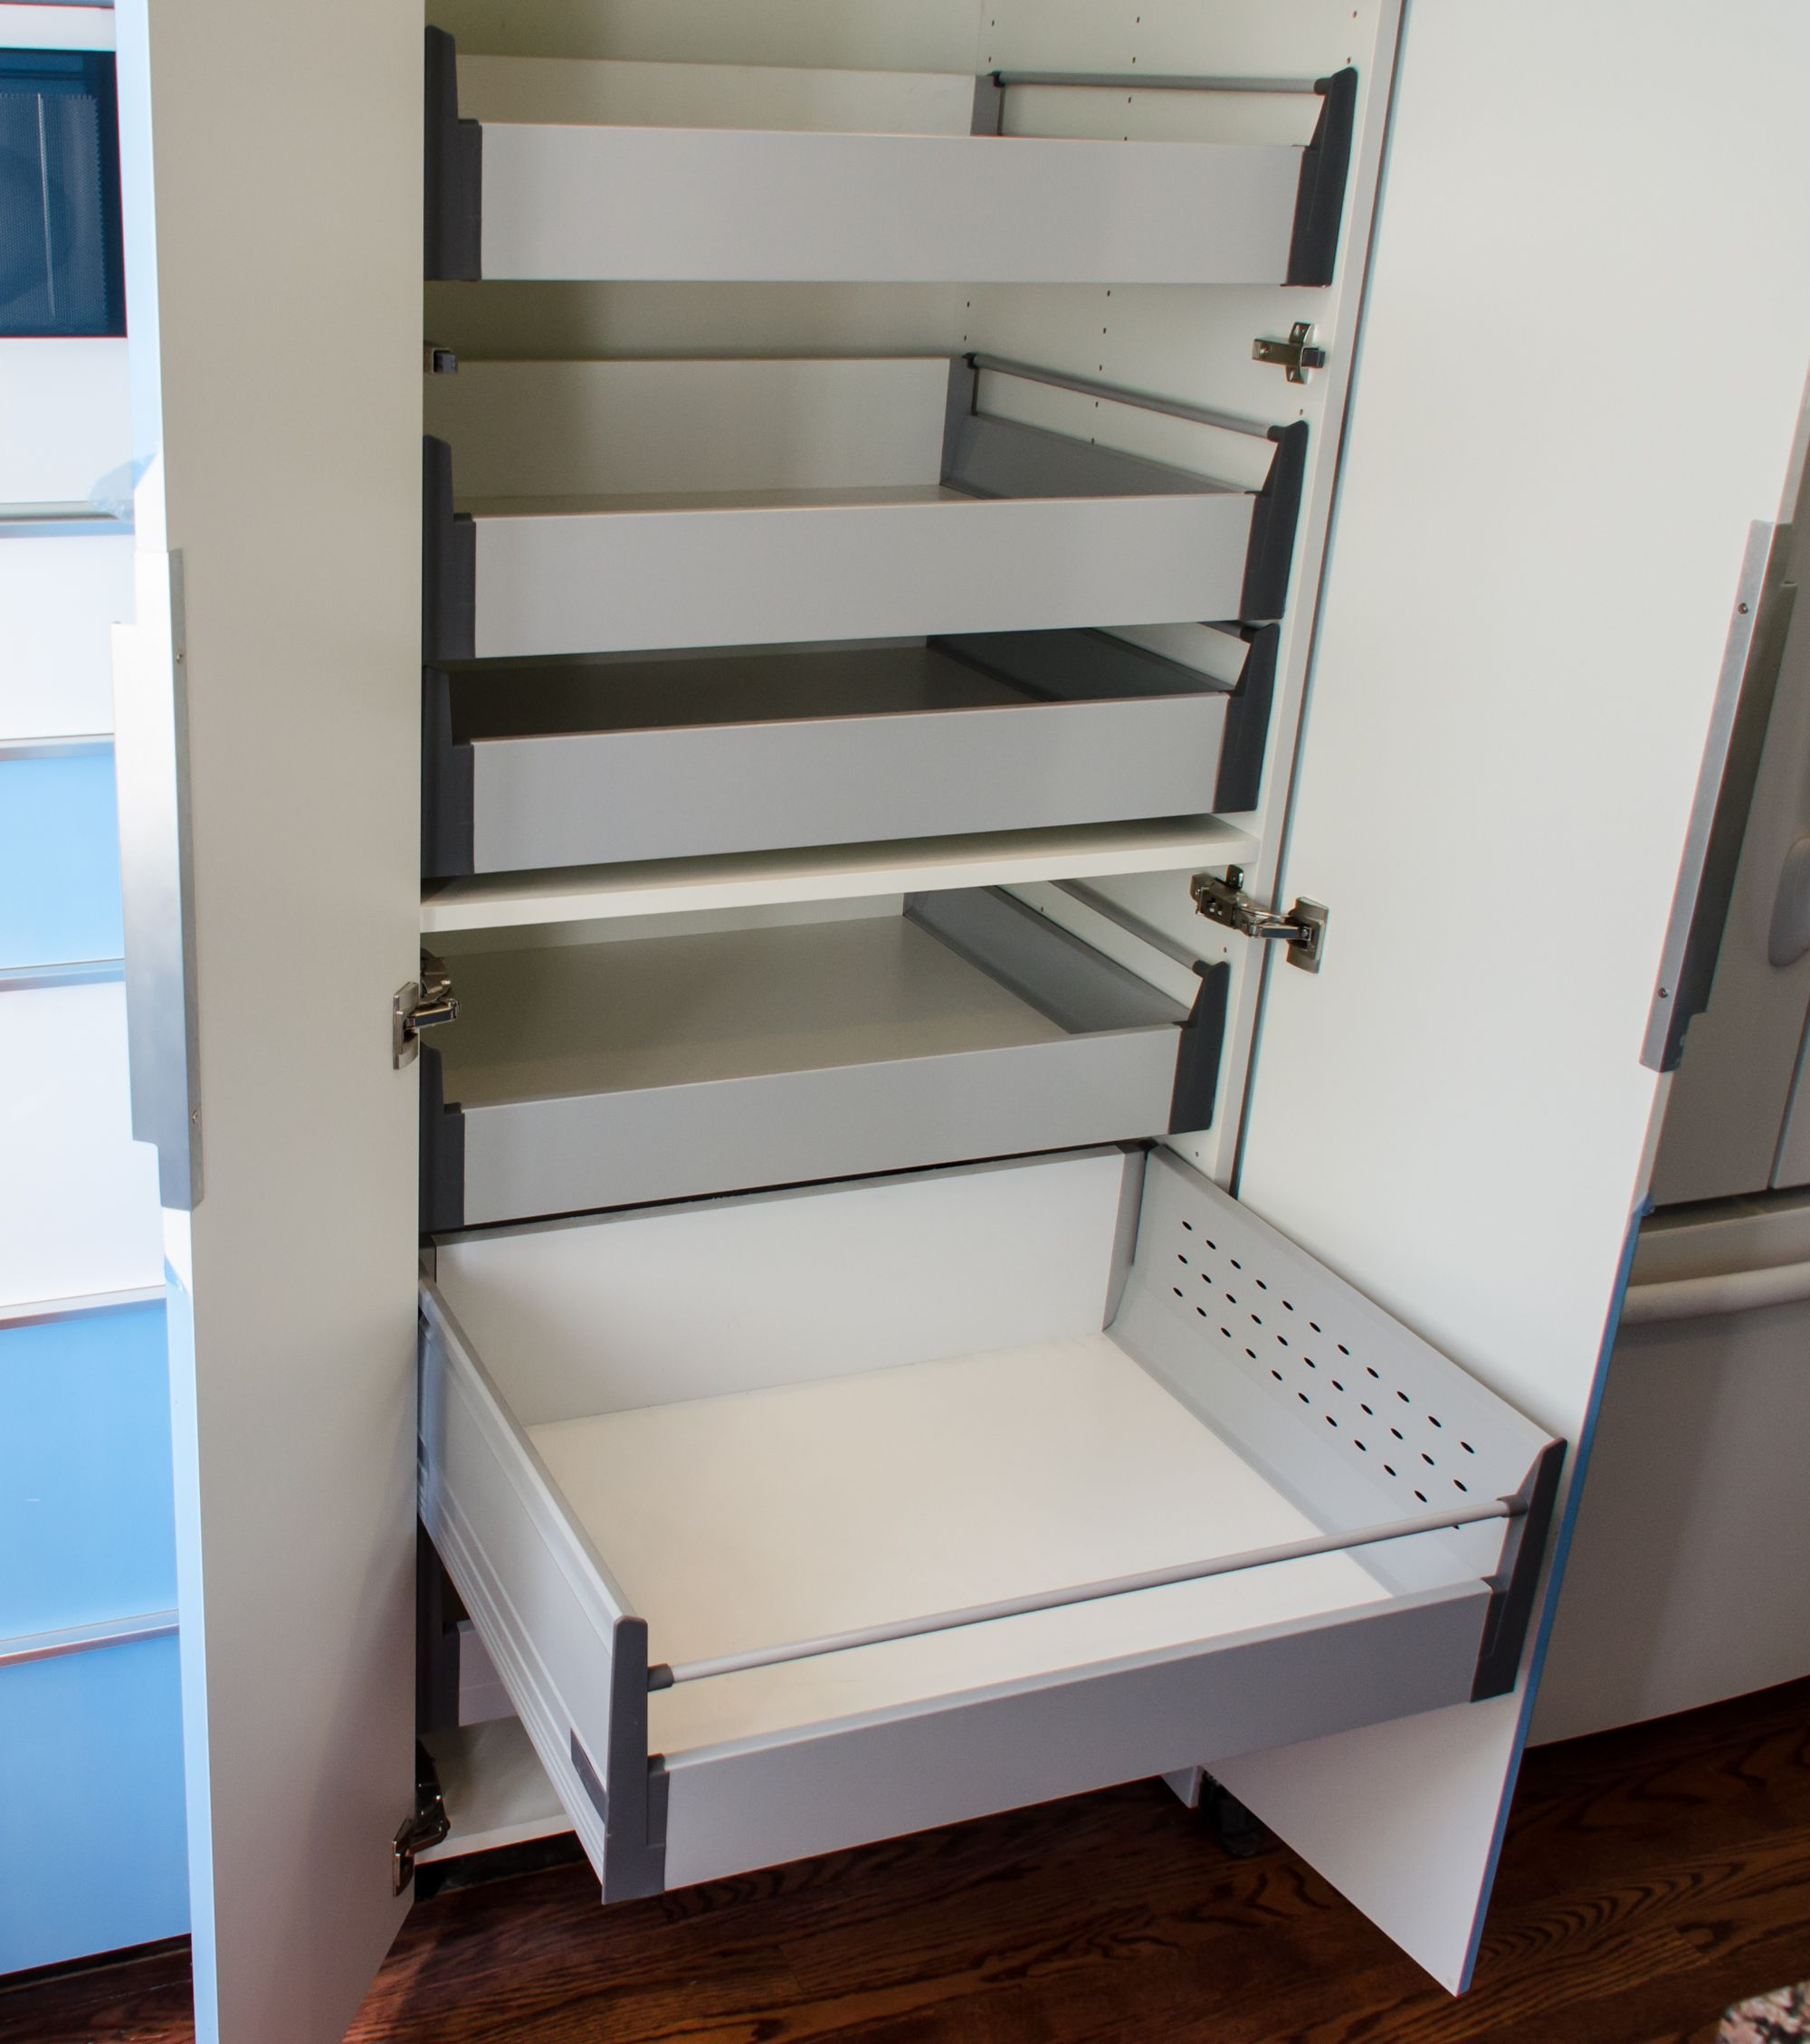 Kitchen Cabinets Slide Out Shelves Ikea Akurum High Cabinet Hack With Sliding Shelves Slide